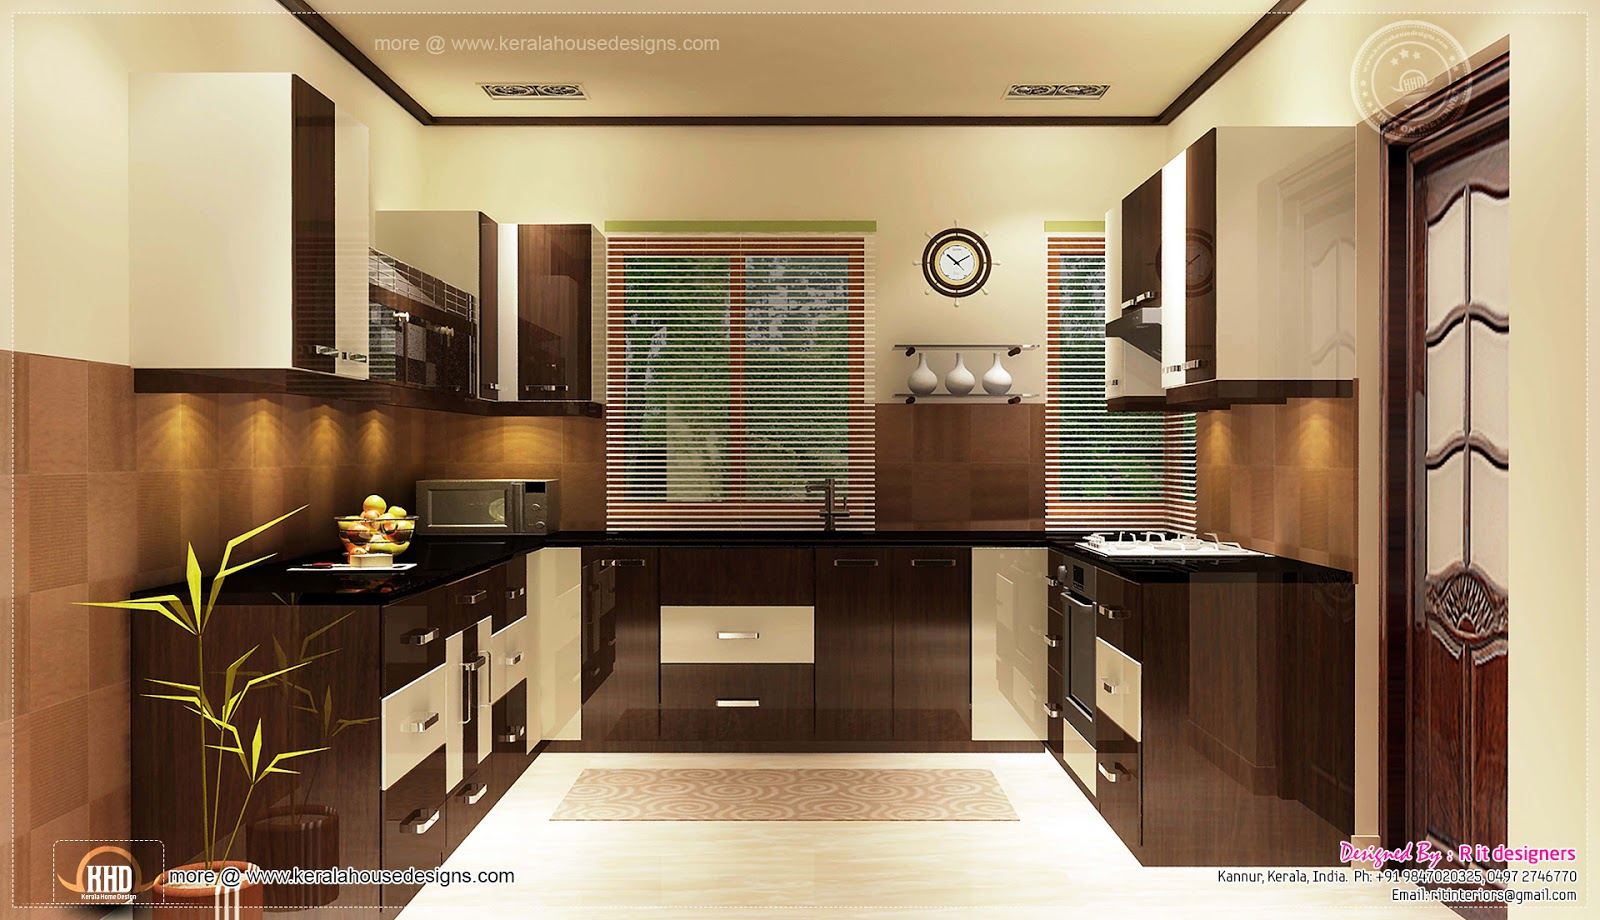 Home interior designs by rit designers kerala home - Home interior designs ...